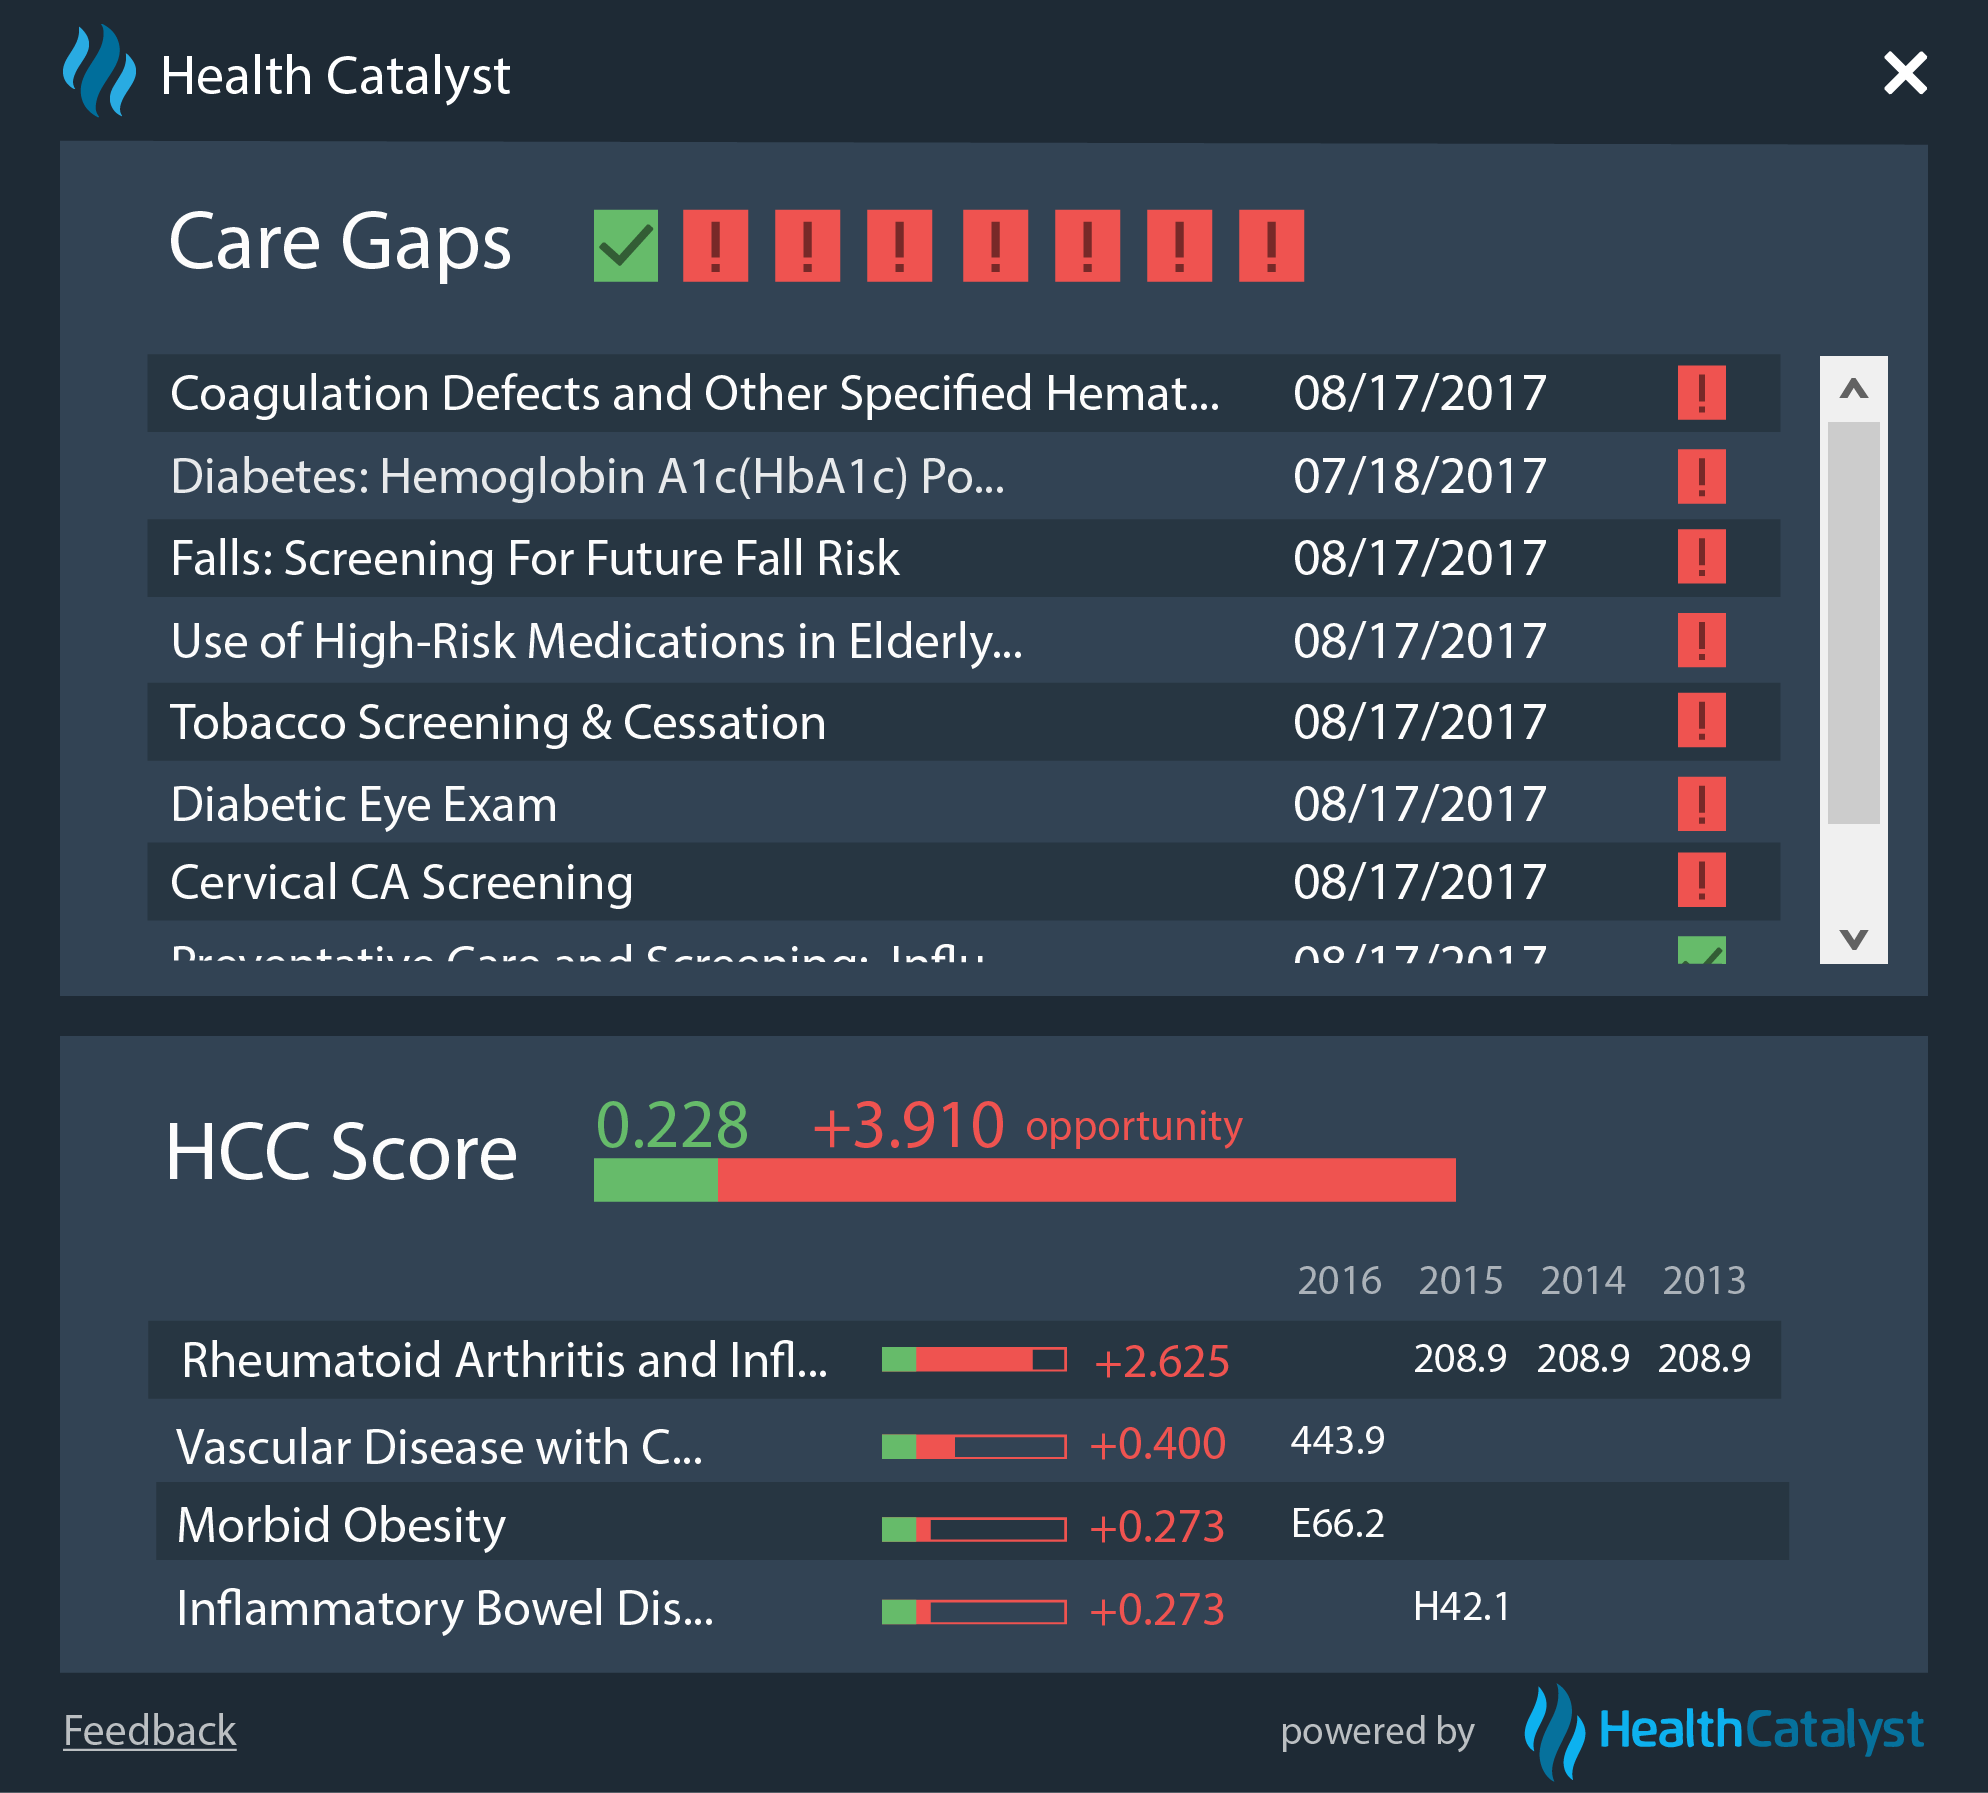 Stewardship App - Clinical cost transparency tool